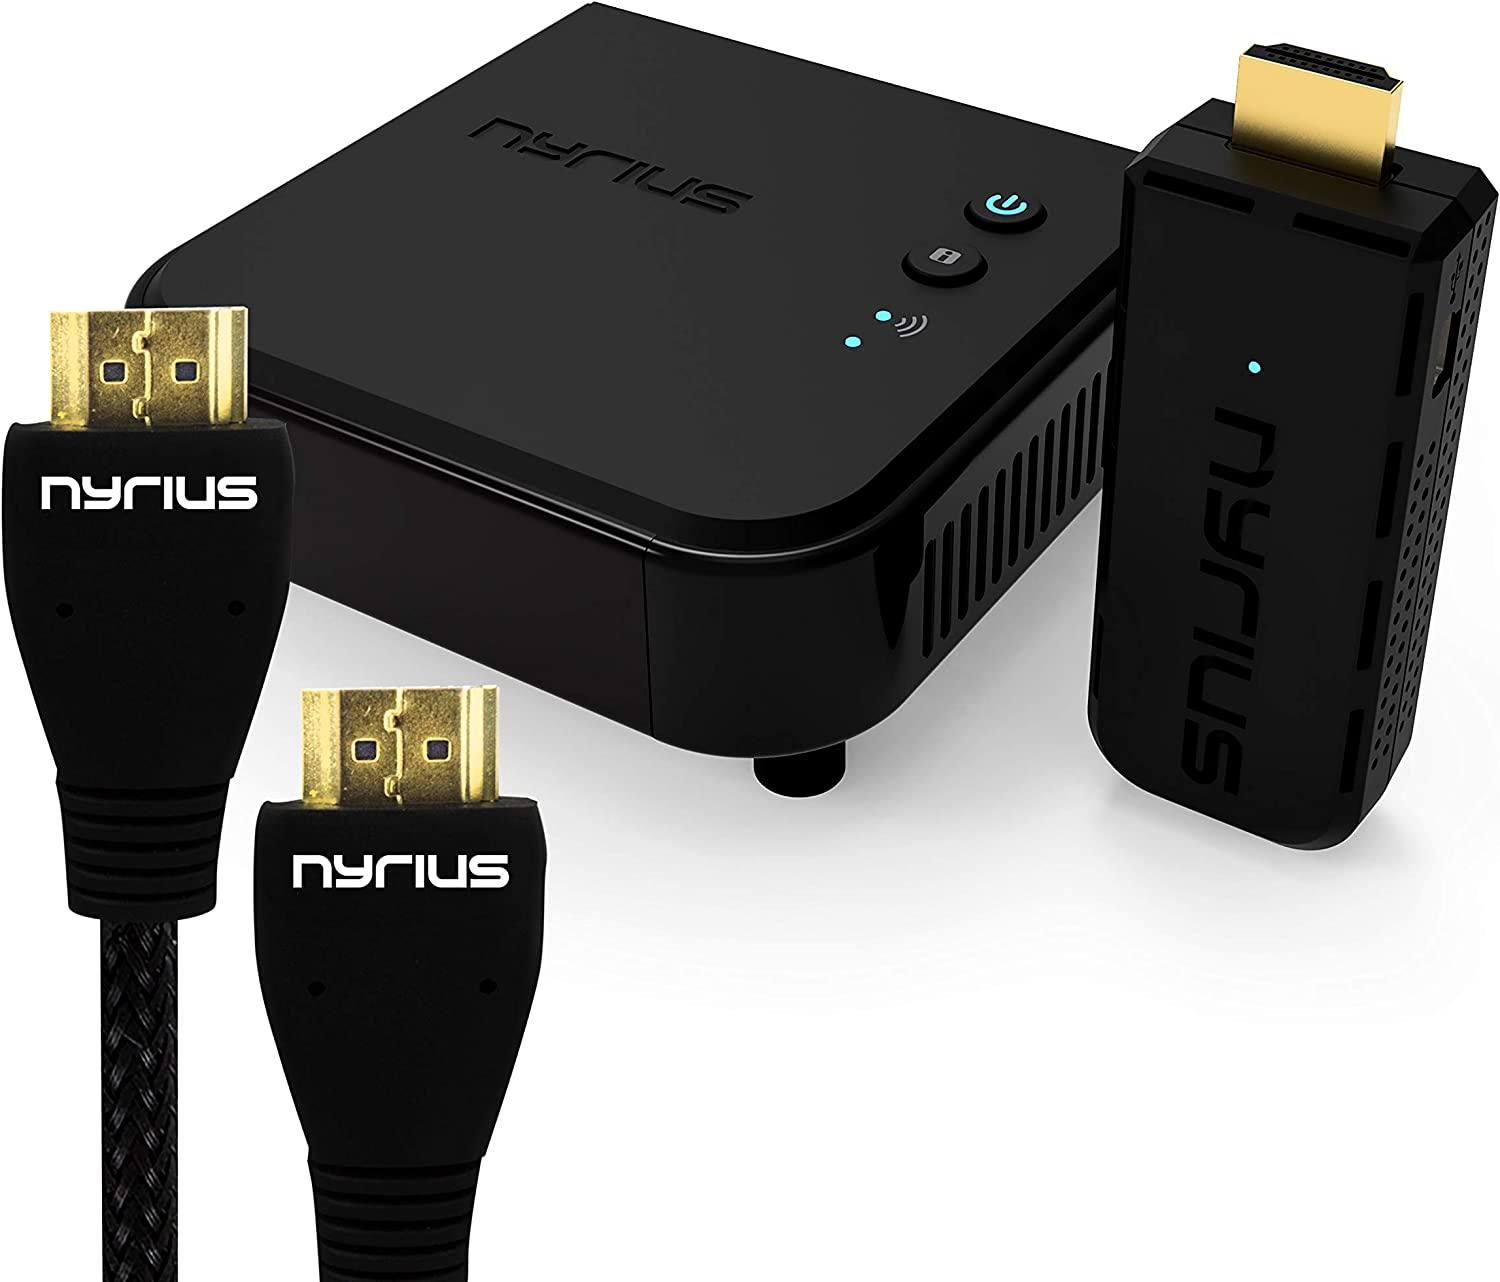 Nyrius Aries Pro Wireless HDMI Transmitter & Receiver to Stream HD 1080p 3D Video from Laptop, PC, Cable, Netflix, YouTube, PS4, Drones, Pro Camera, to HDTV/Projector & Bonus HDMI Cable